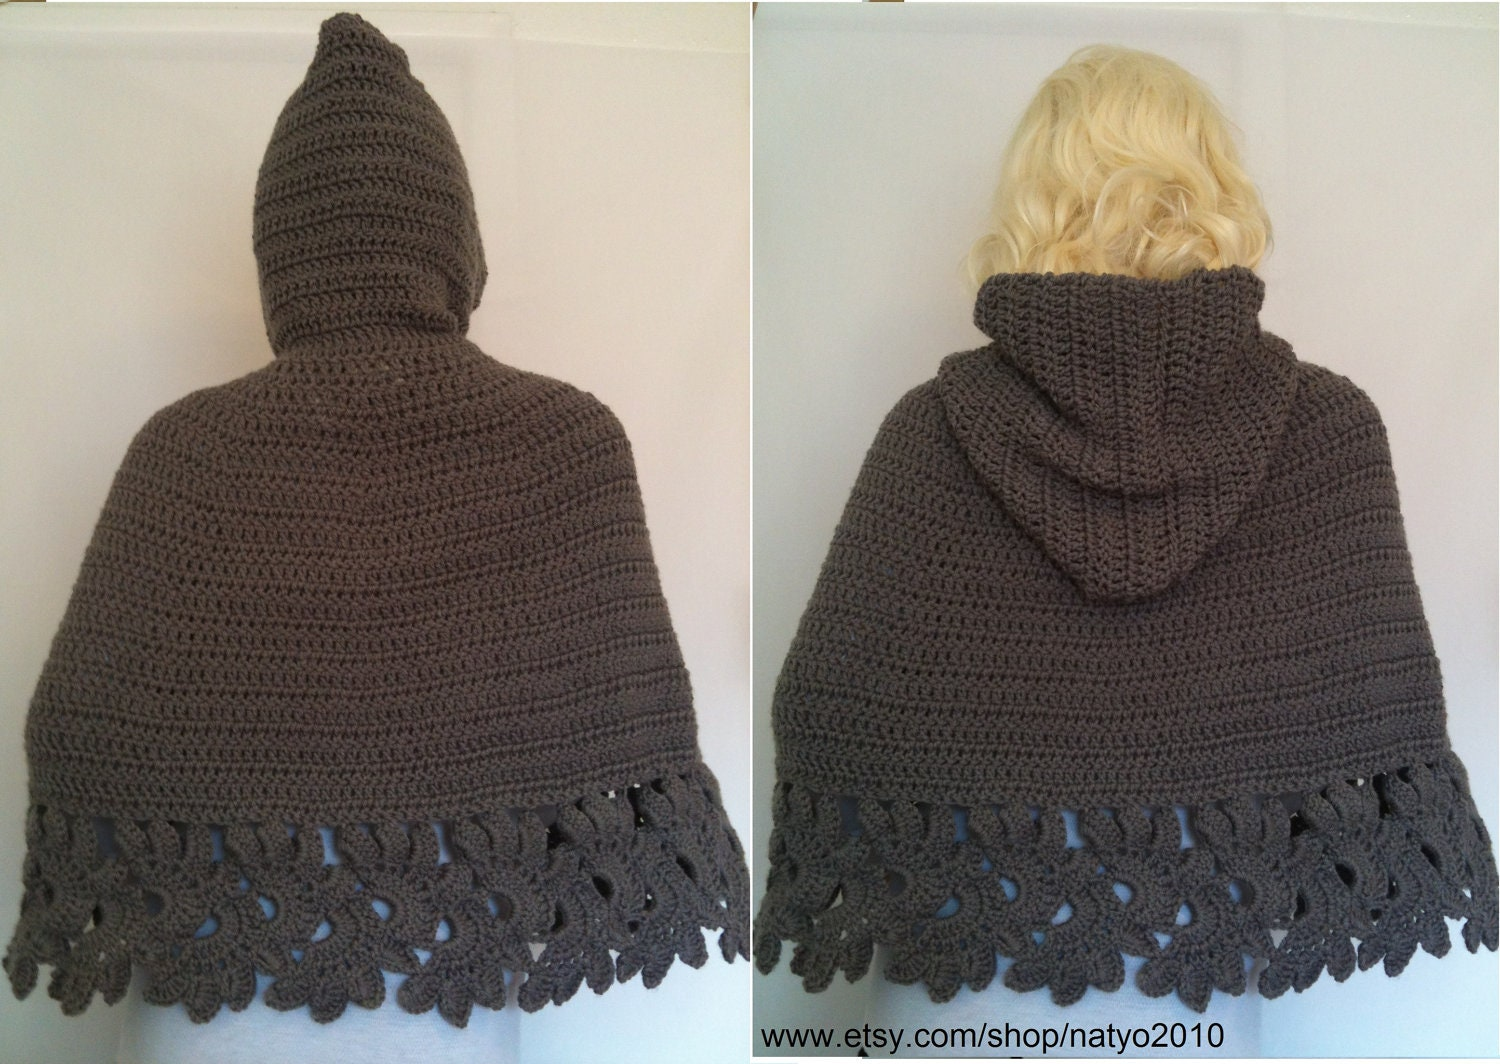 Free Crochet Pattern For Hooded Cape : INSTANT DOWNLOAD Crochet Hooded Cape Pattern PDF by ...